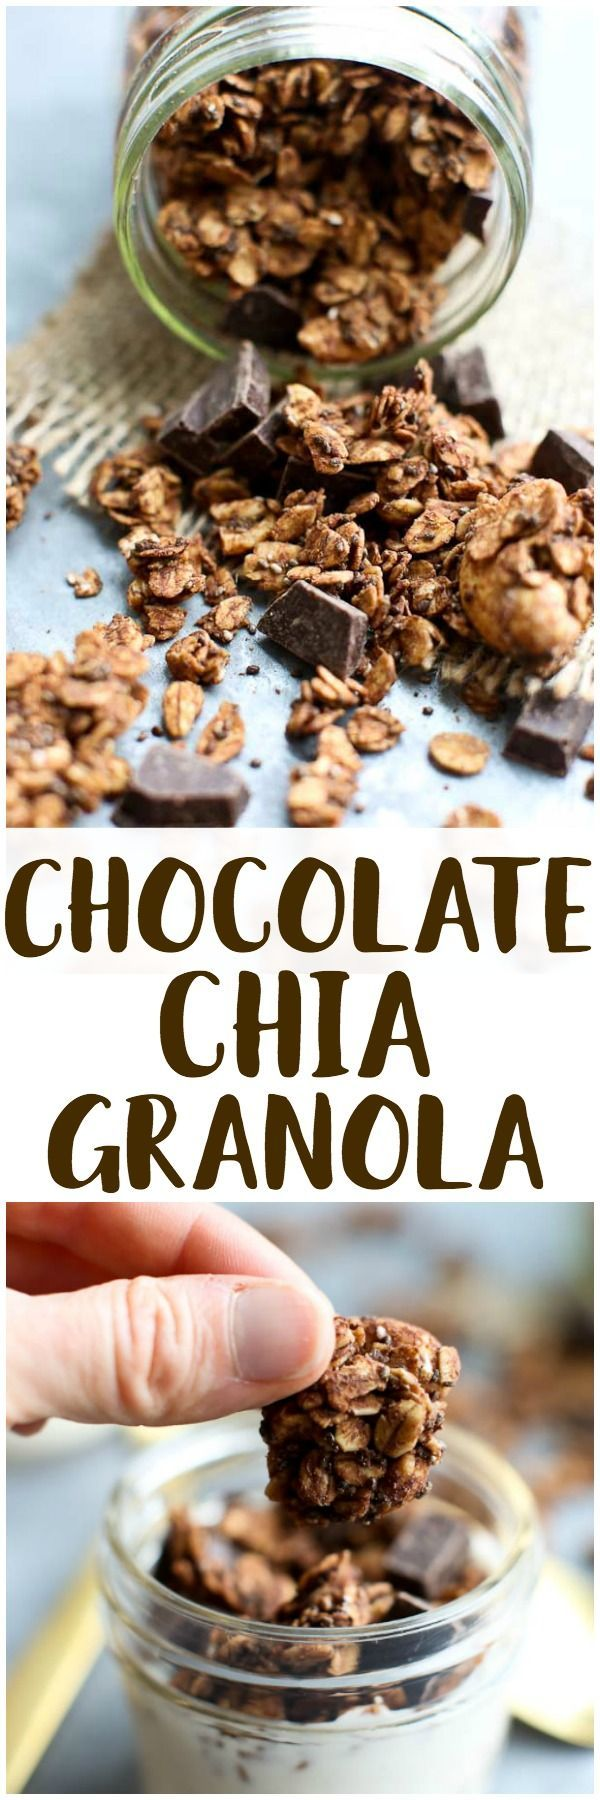 Healthy granola recipe! This Chocolate Chia Granola is filled with nutrients and omega 3s from the chia seeds. Great healthy breakfast or snack idea! Vegan and gluten-free recipe.